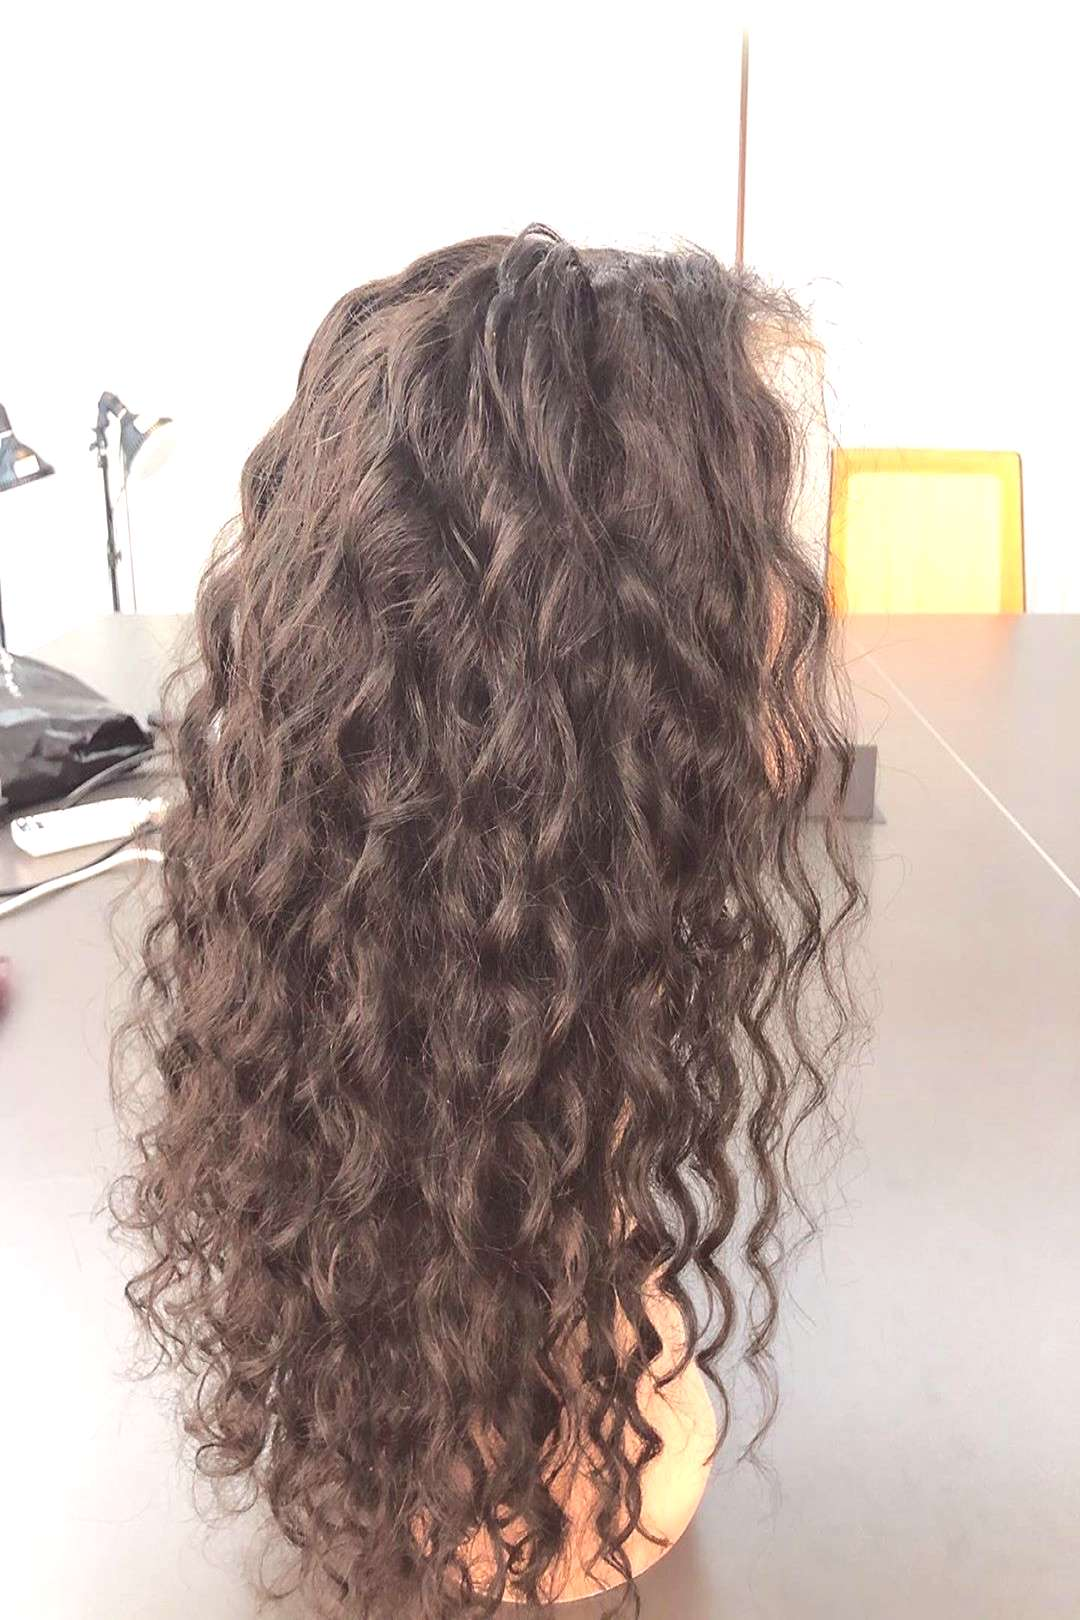 Wholesale Price Hair on April 21 2020 one or more people